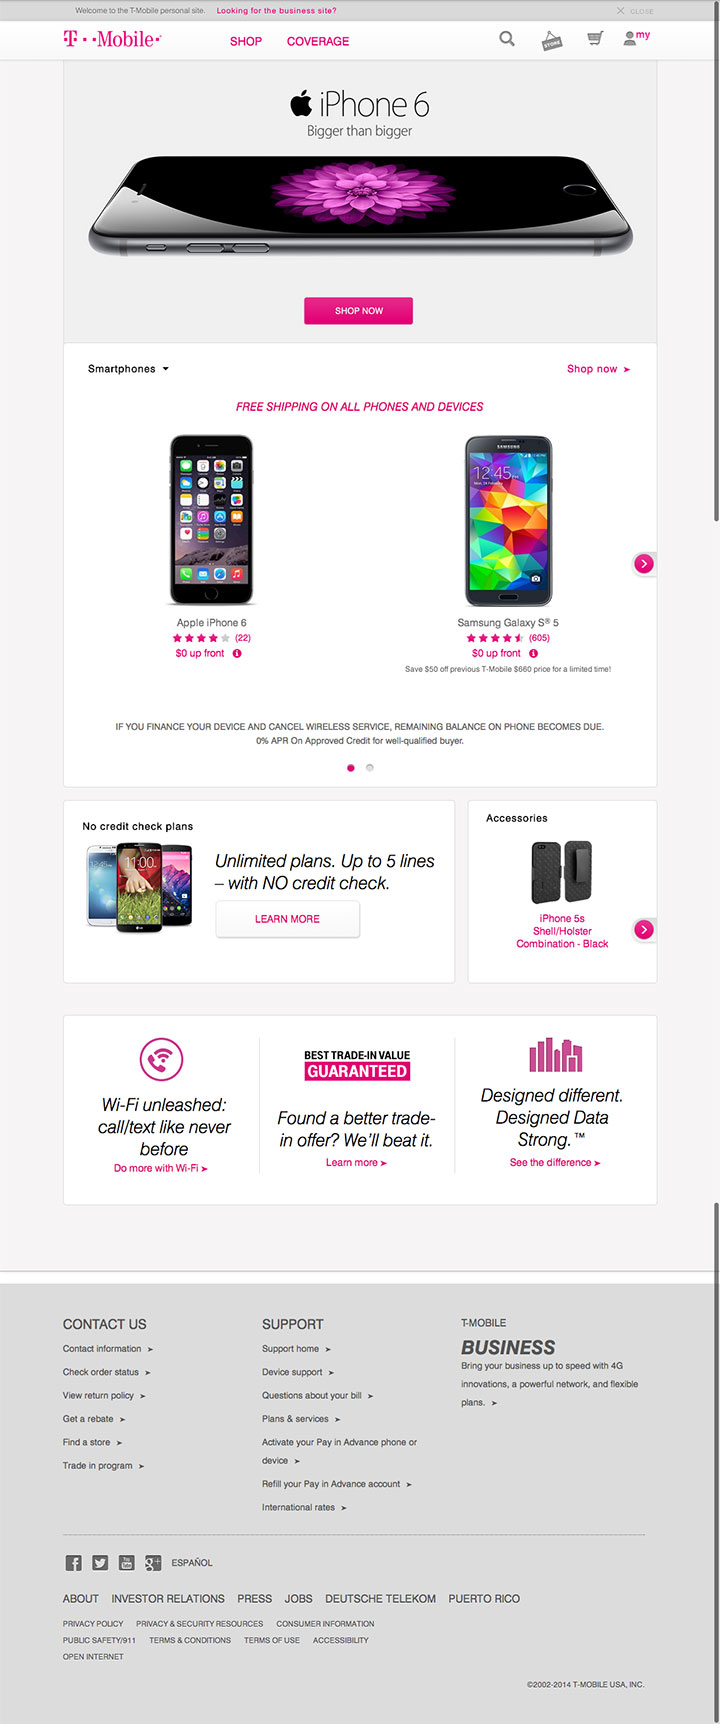 t-mobile-us